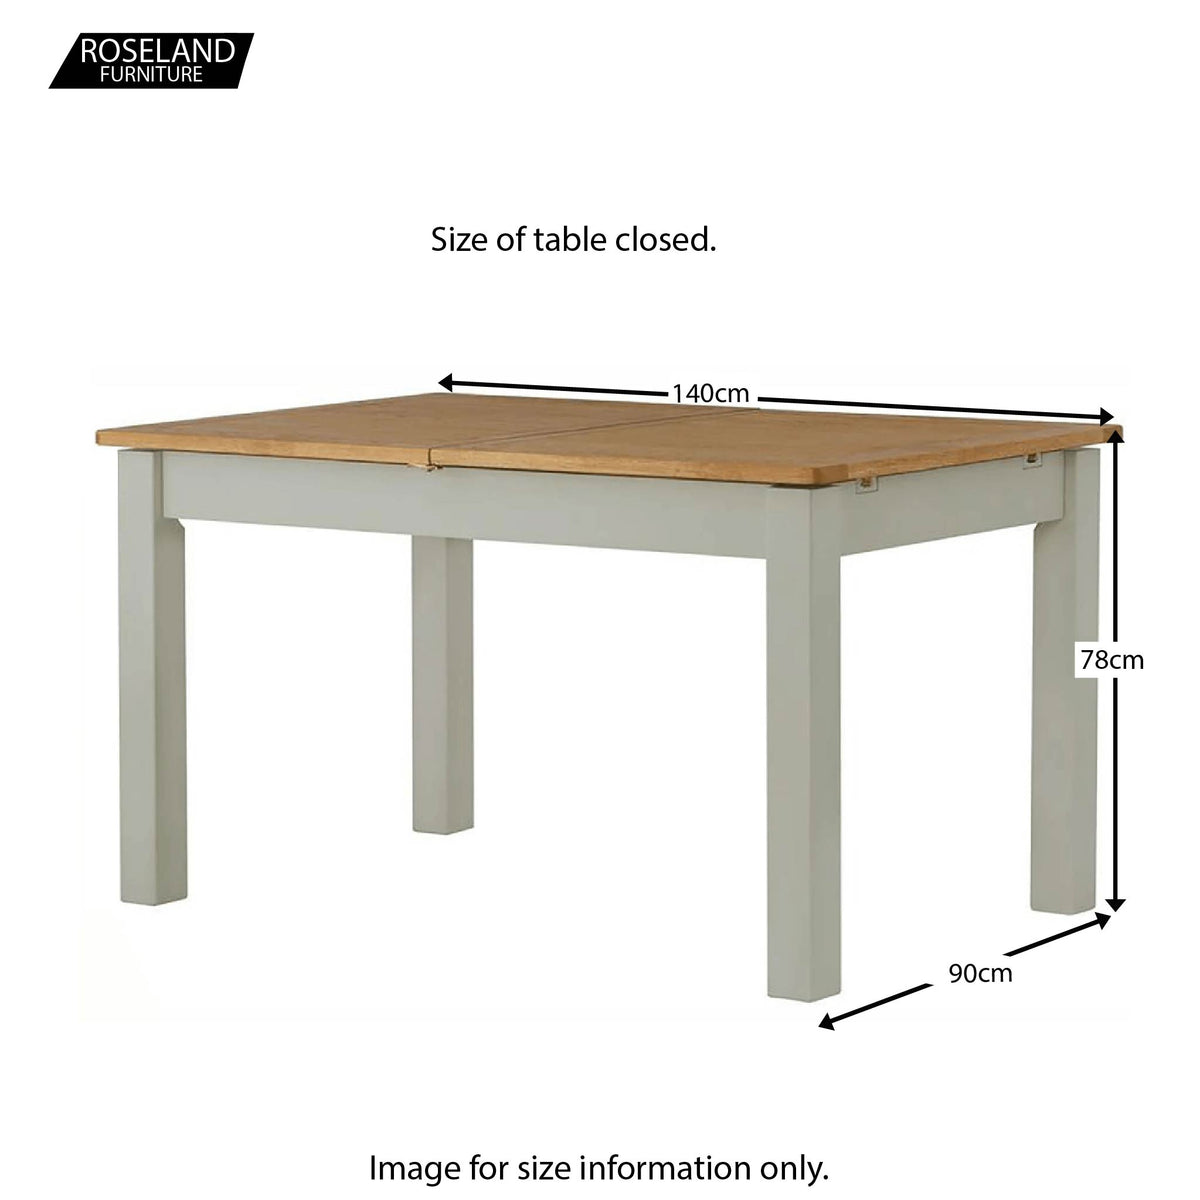 Padstow Grey Extending 140-180cm Dining Table - Size Guide of Table Closed